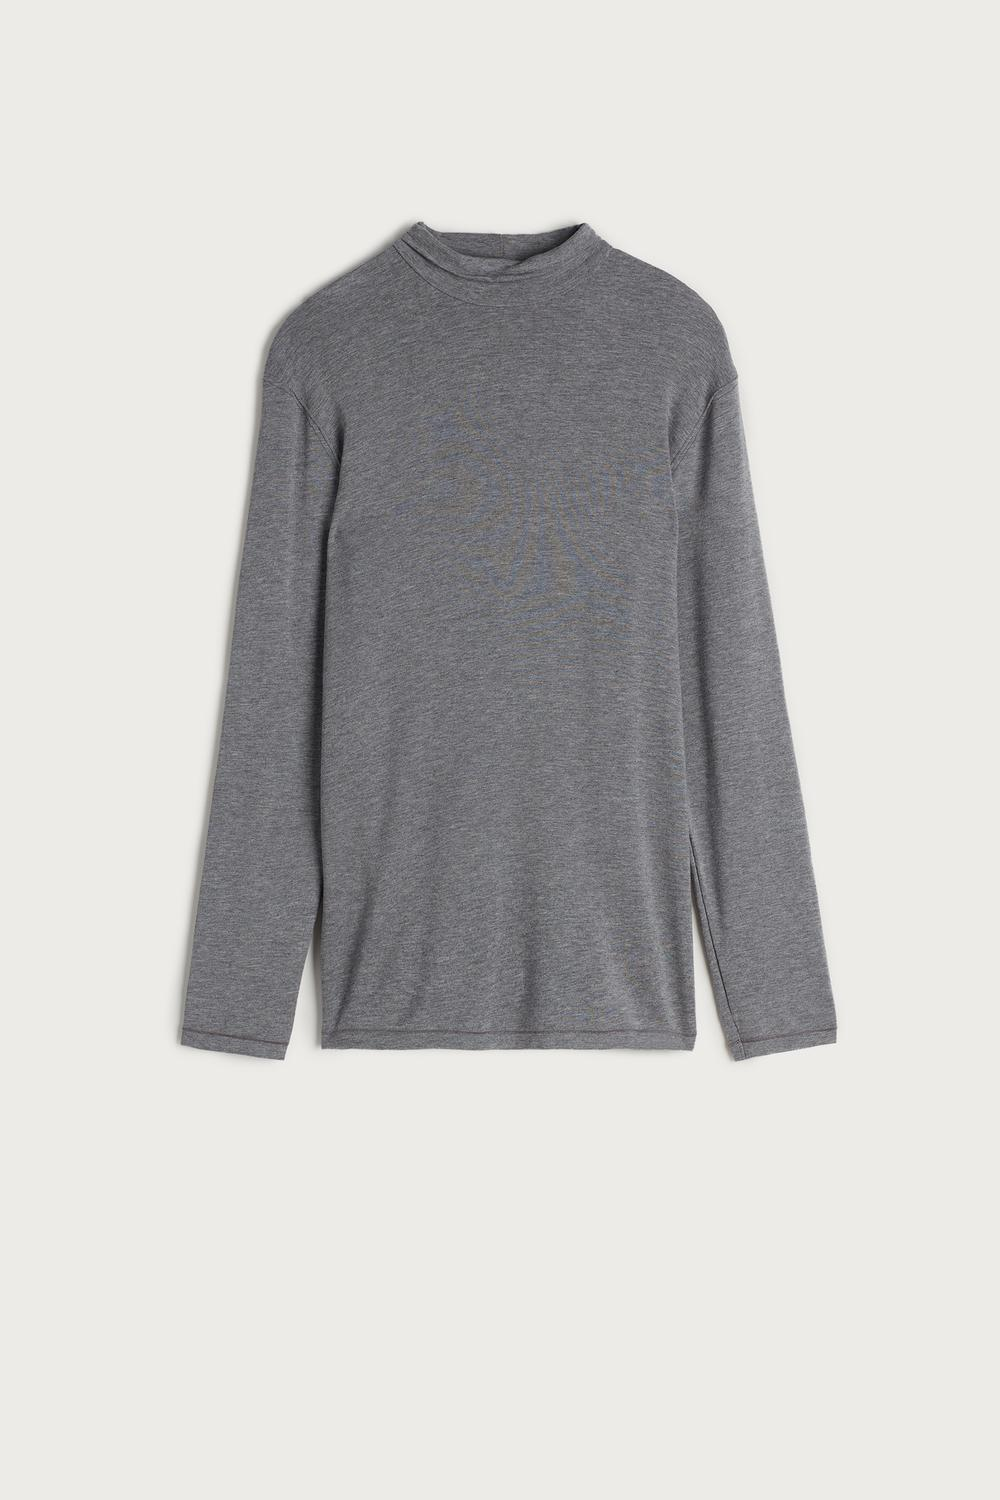 Long-sleeve High-Neck Modal-Cashmere Top